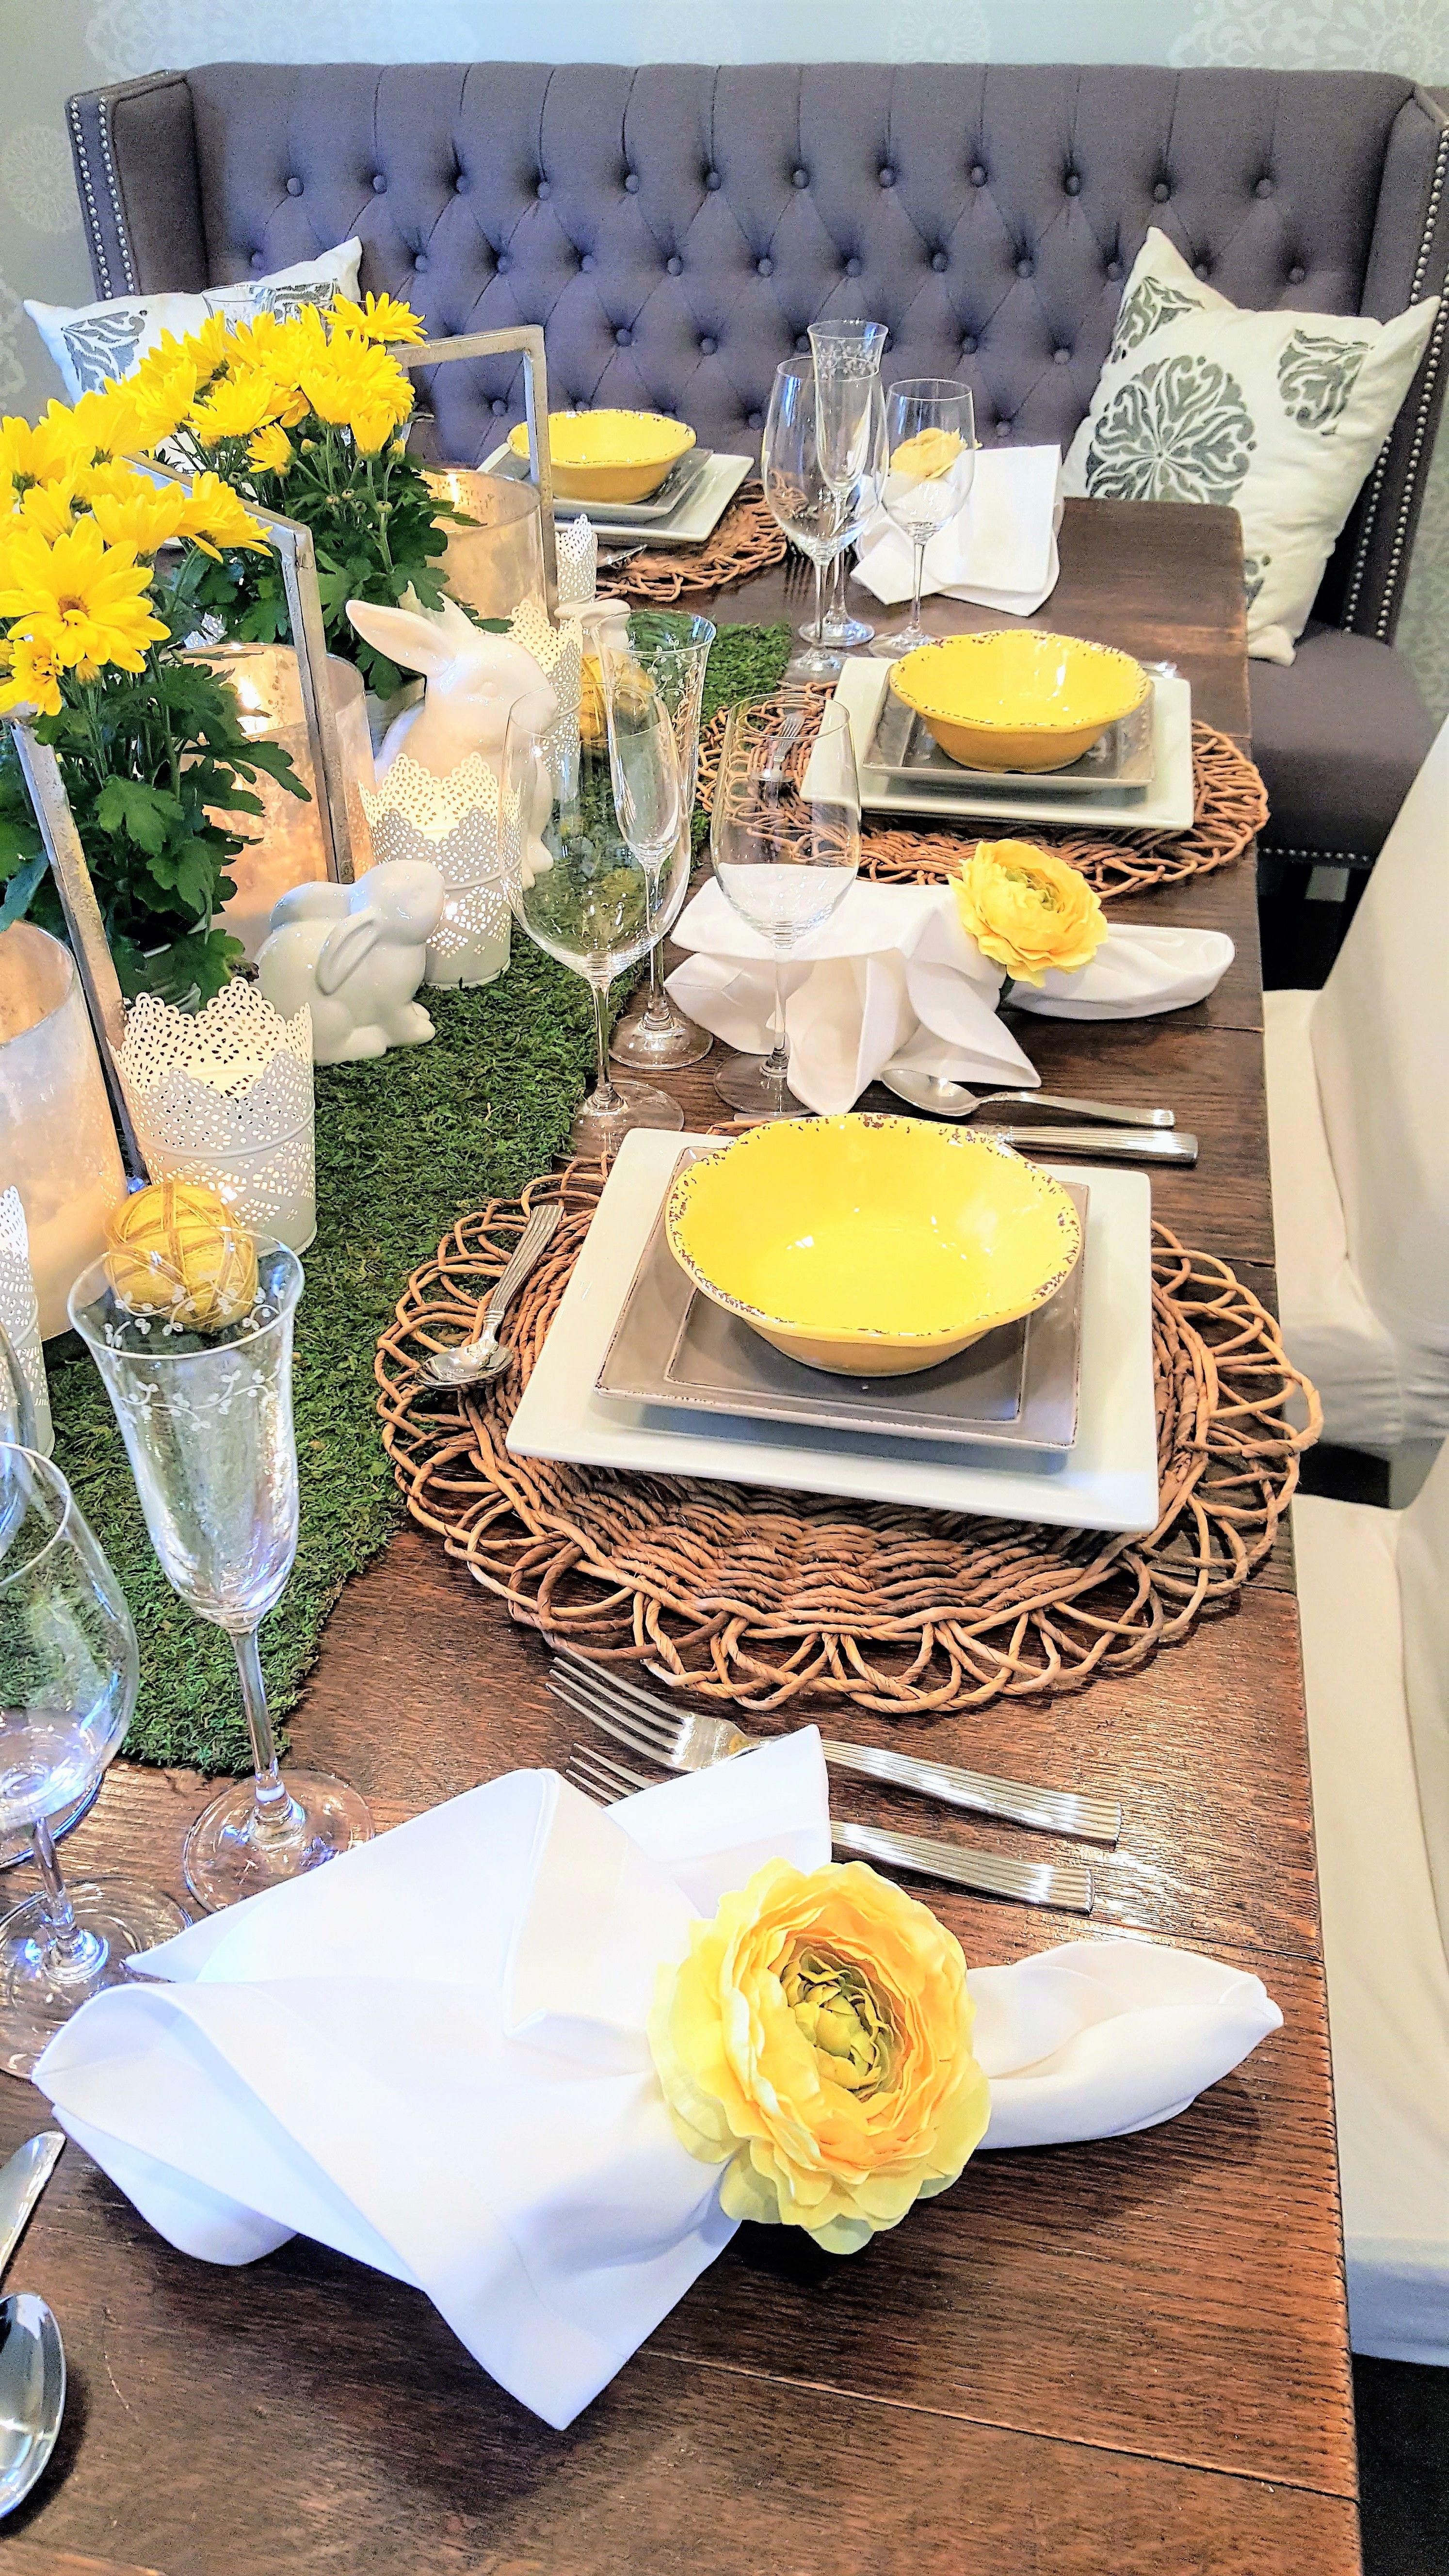 Easter & Yellow Grey and White Easter Table Setting - Home with Holliday ...